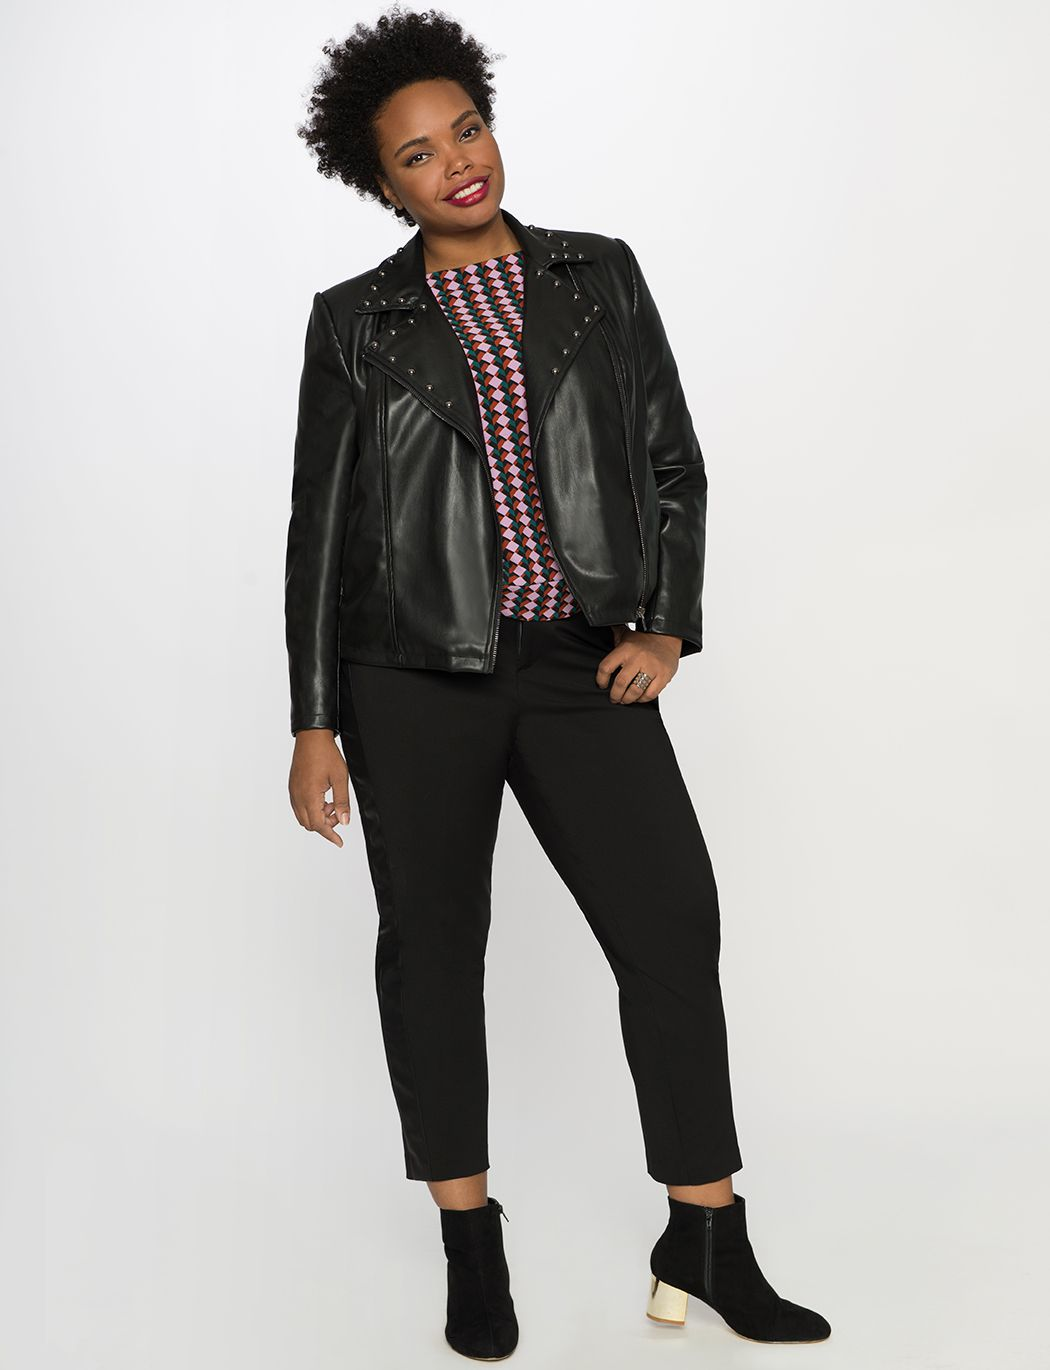 A model in black pants and a leather jacket